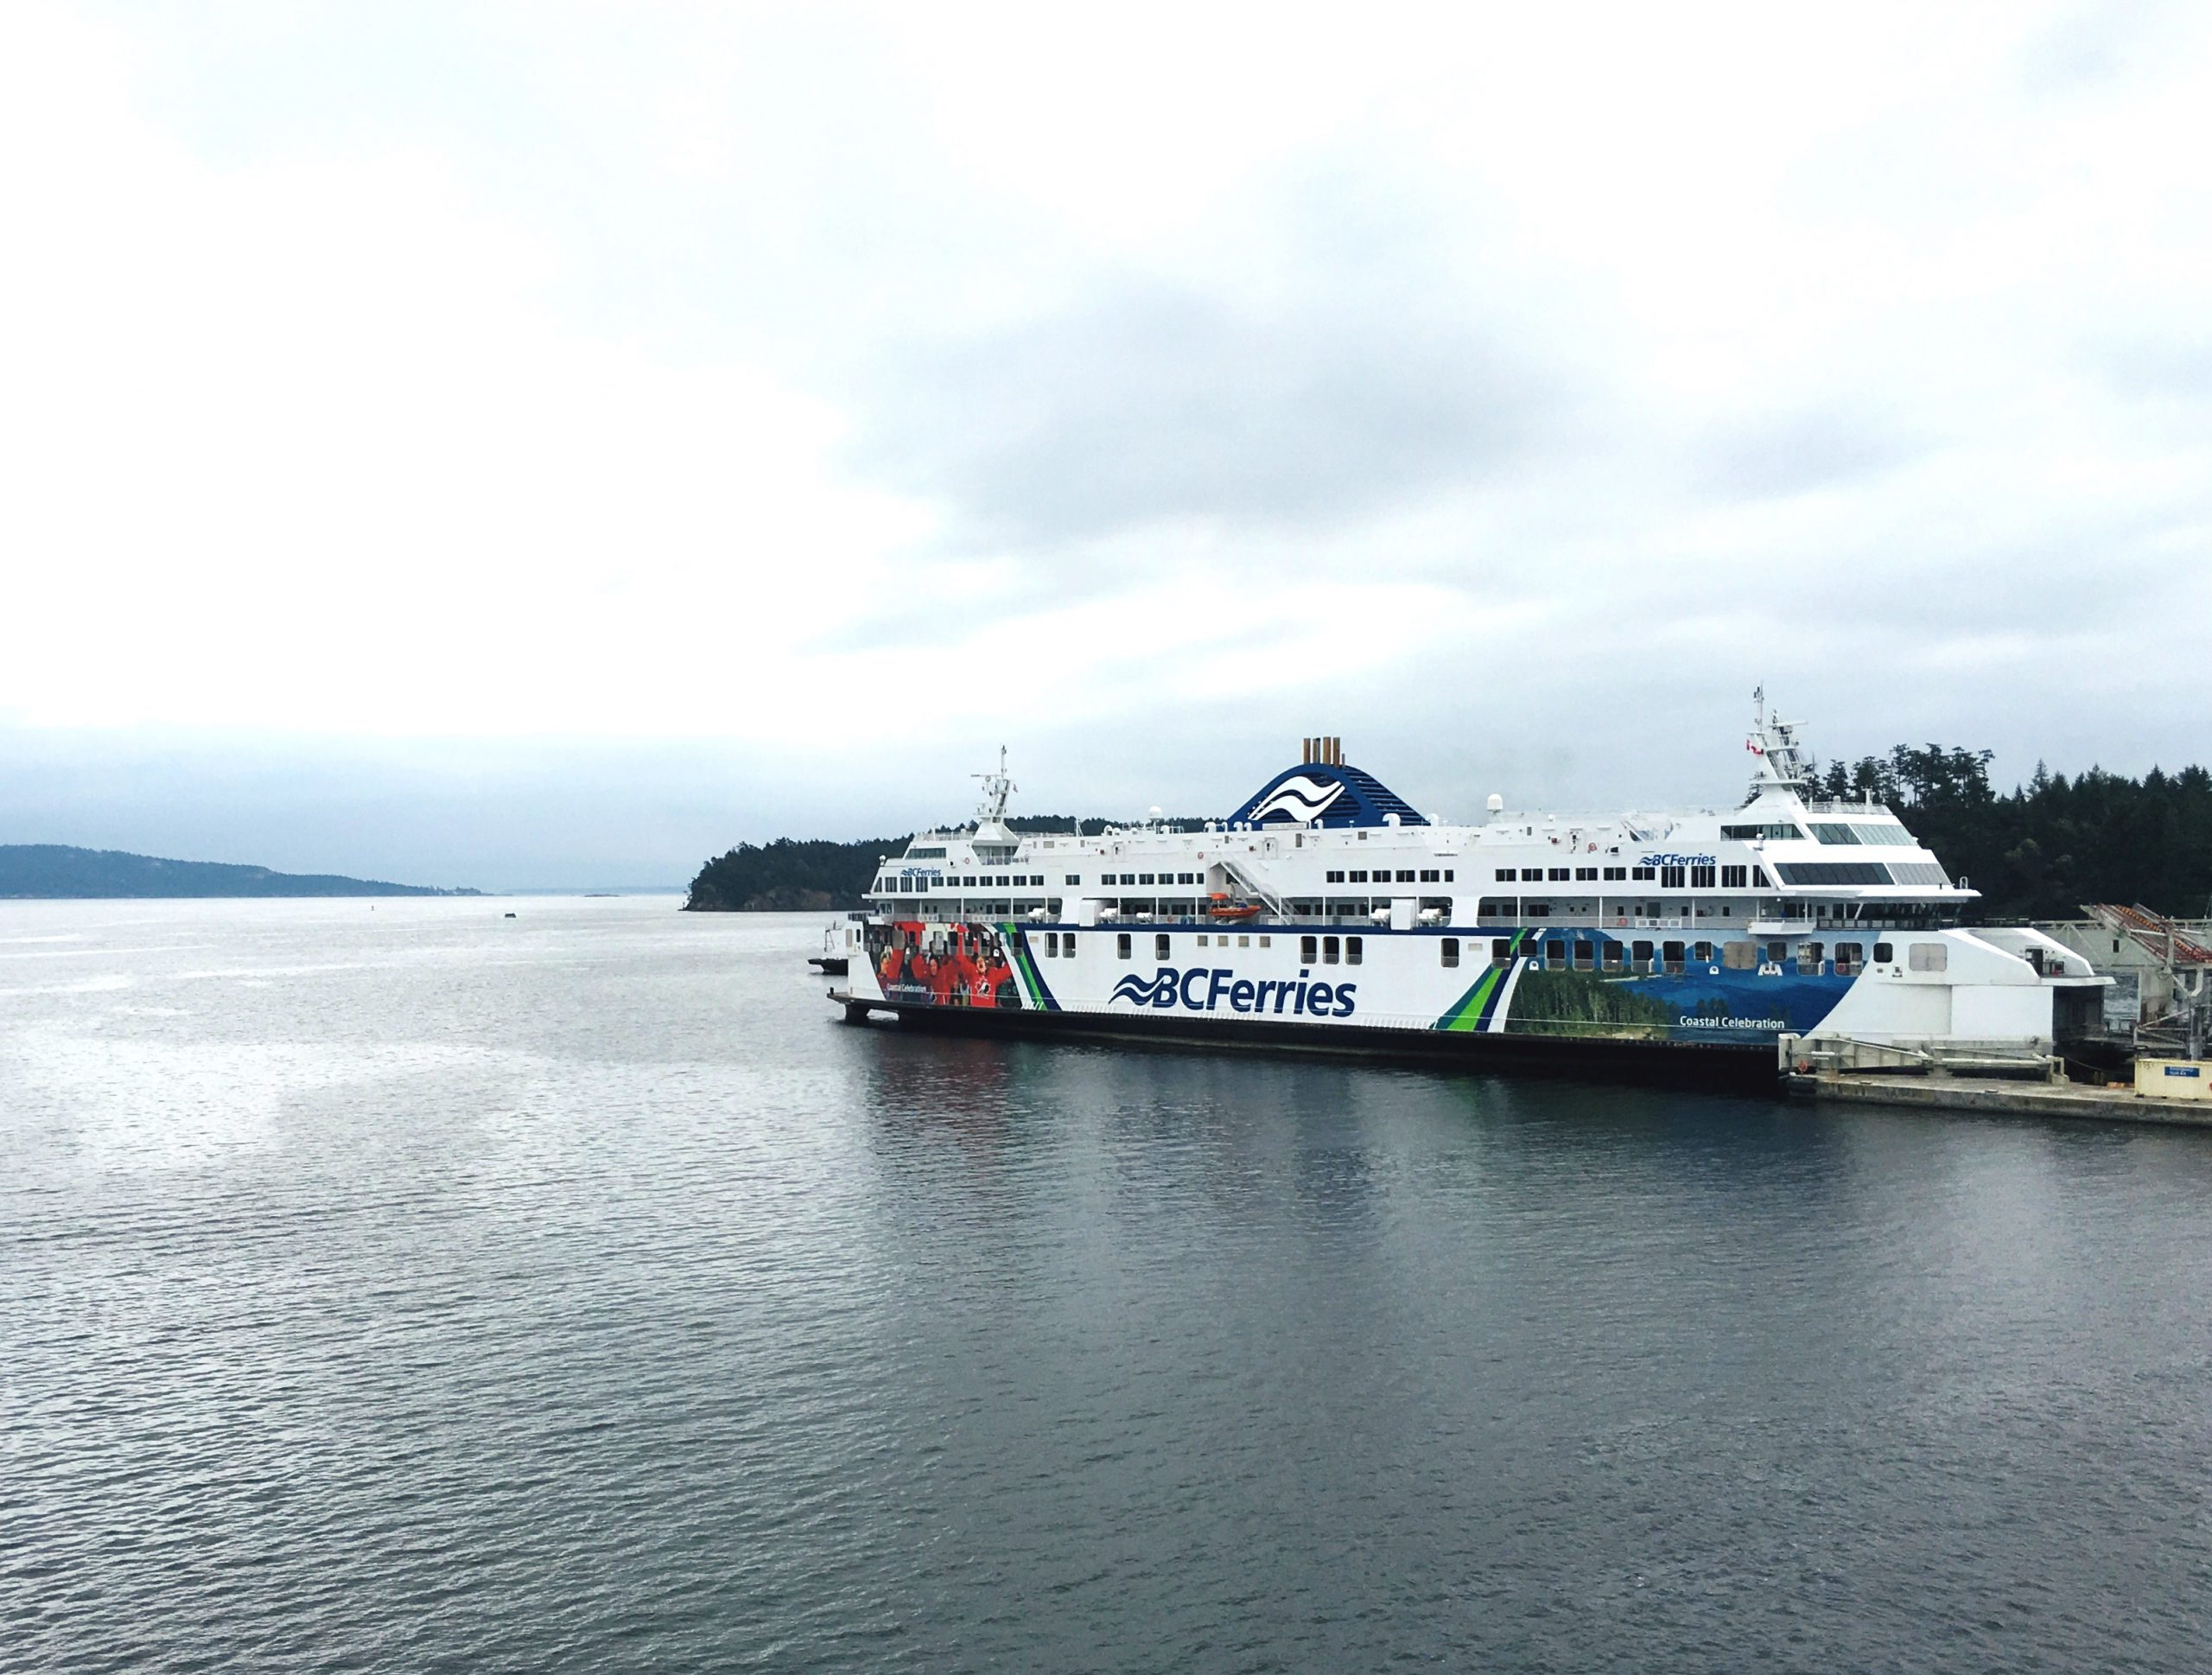 BC Ferries suspends service on some routes over COVID-19 pandemic